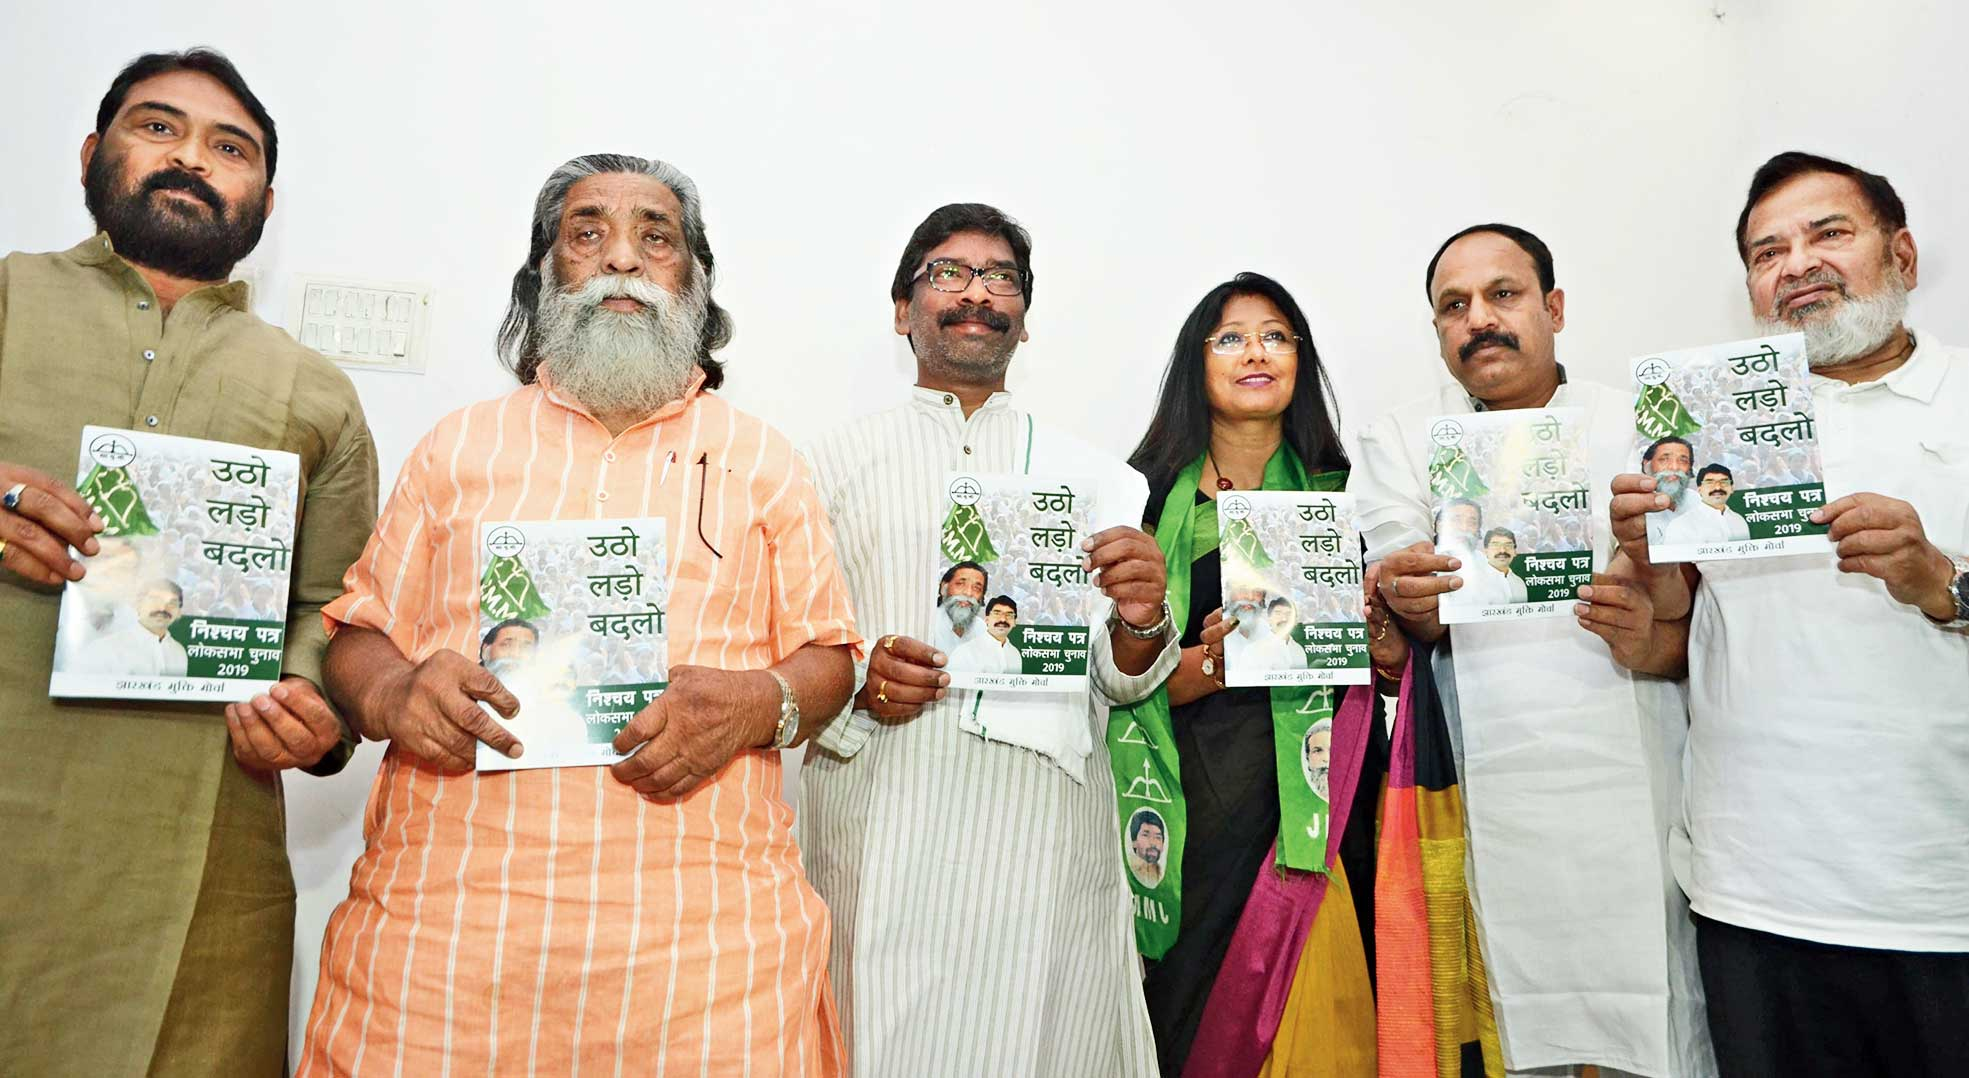 JMM chief Shibu Soren and son Hemant release the party's election manifesto at Morabadi in Ranchi.